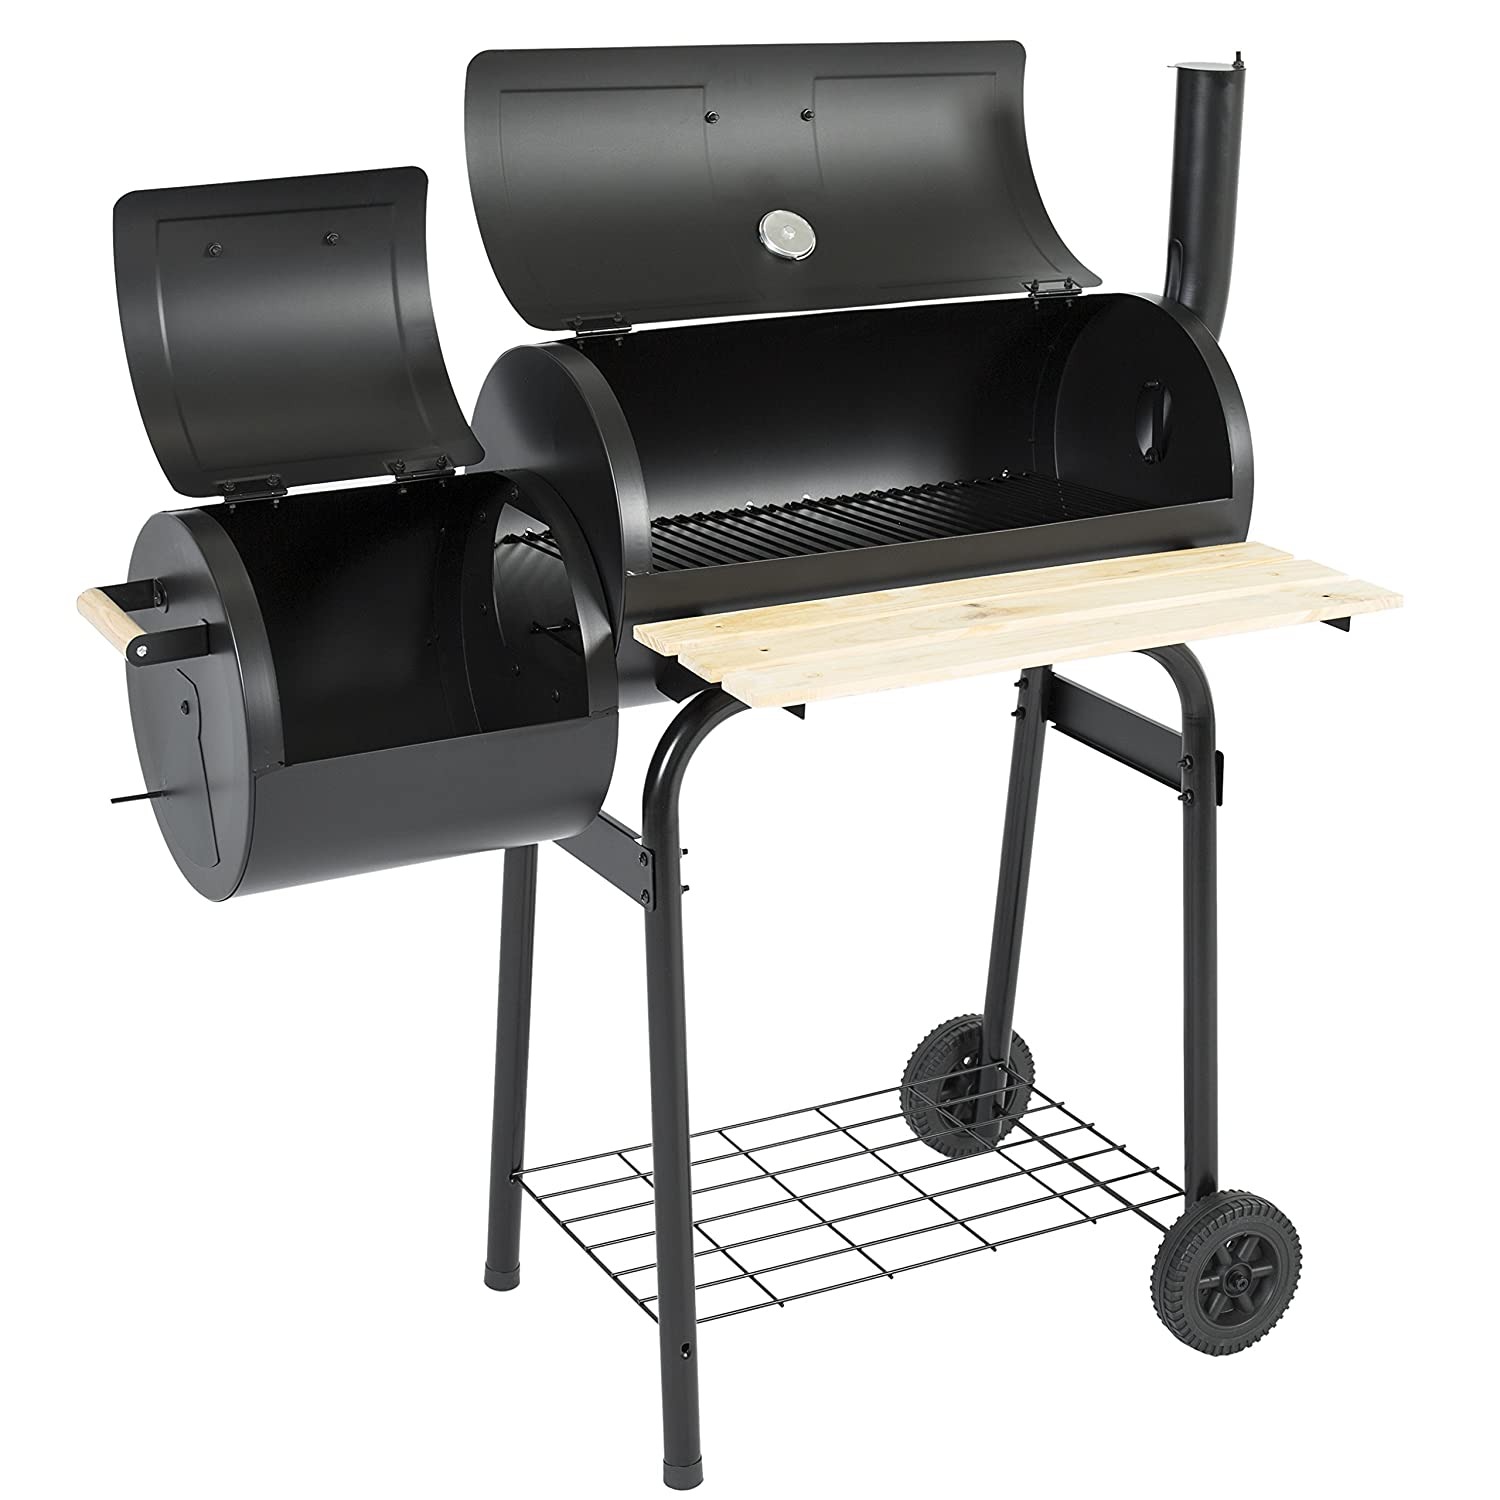 Amazon.com : Best Choice Products BBQ Grill Charcoal Barbecue Patio  Backyard Home Meat Cooker Smoker : Garden U0026 Outdoor